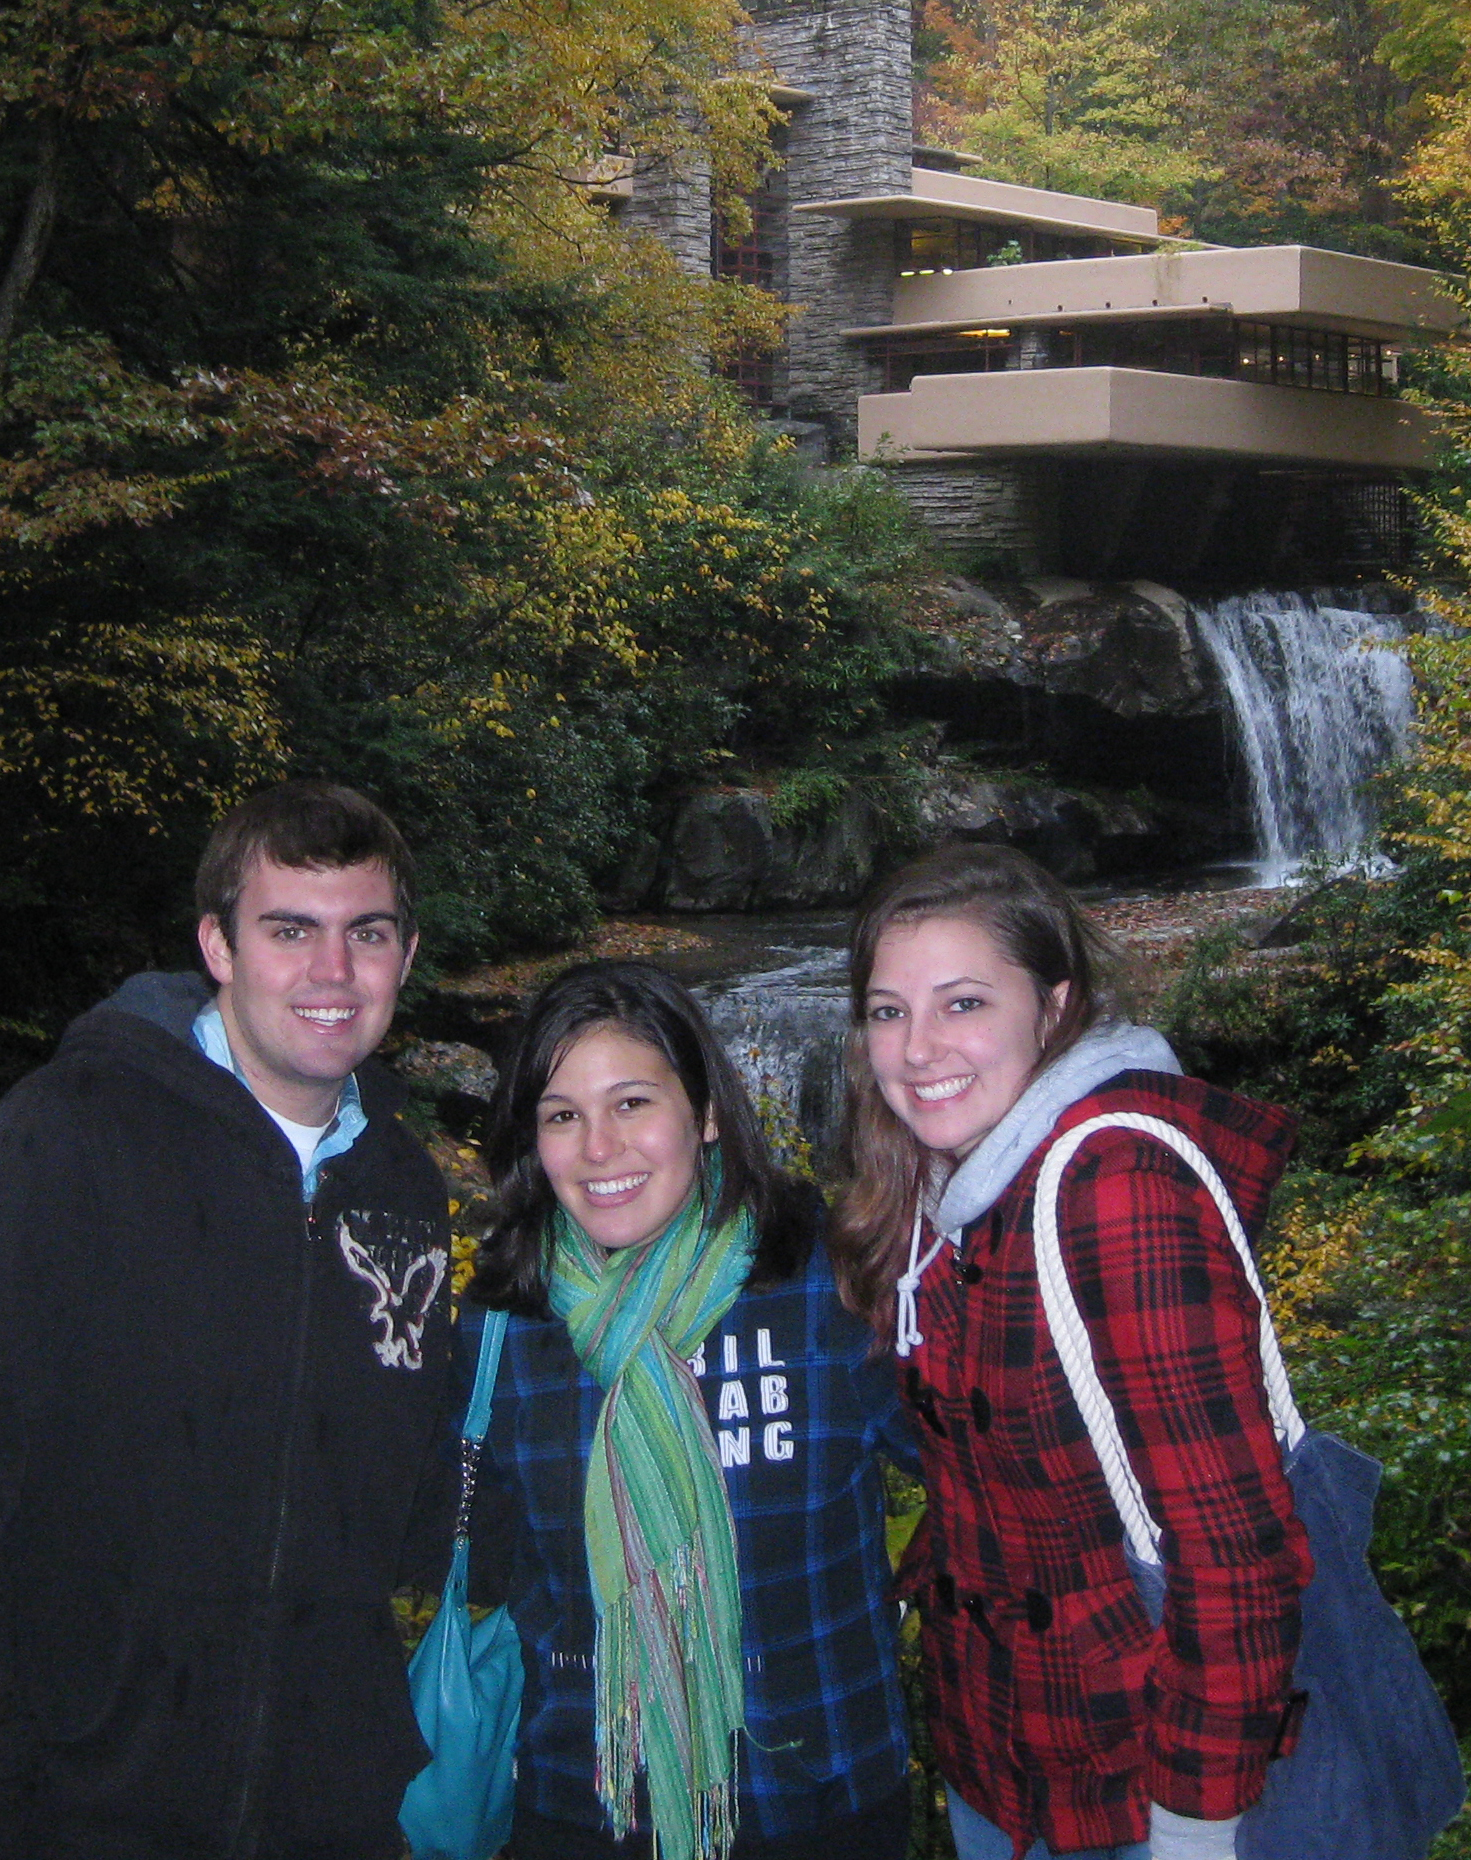 Three students stand in front of a house built over a waterfall.